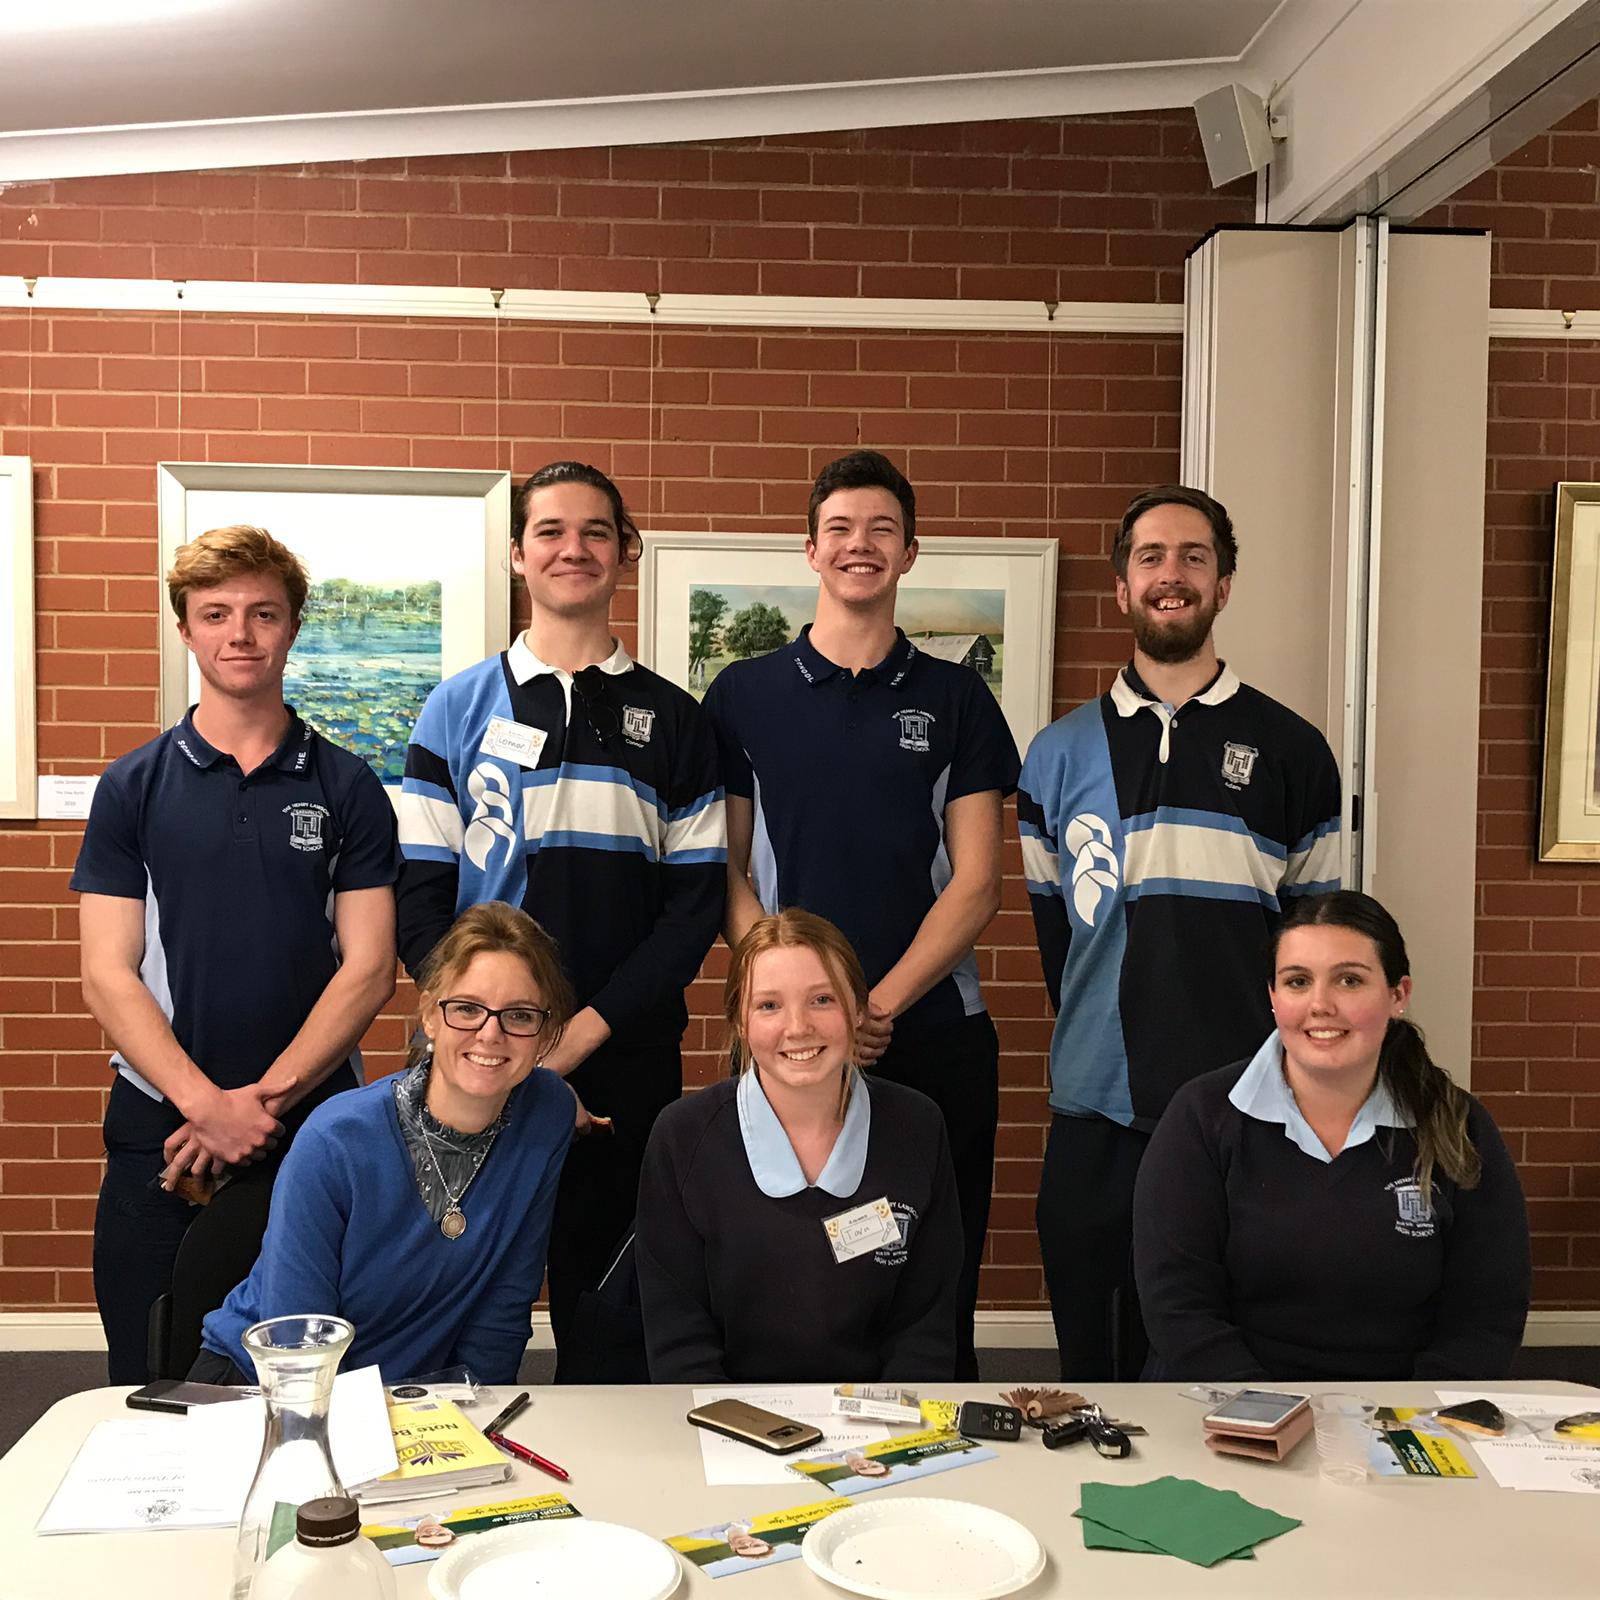 Member for Cootamundra Steph Cooke is surrounded by four teenage boys and two teen girls in school uniforms.